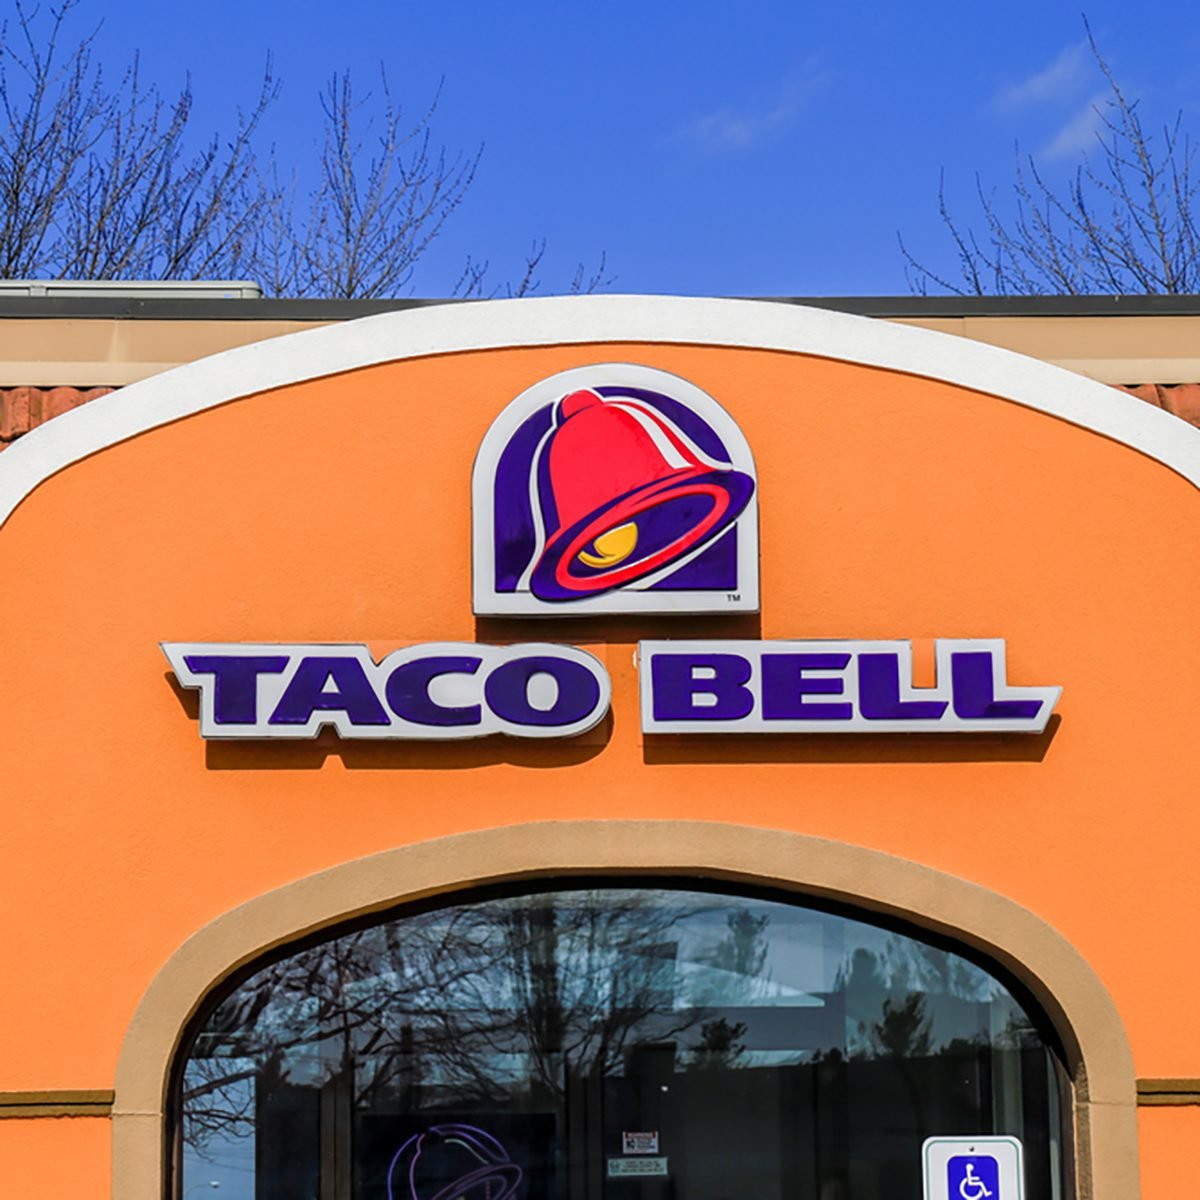 Exterior of Taco Bell fast-food restaurant with sign and logo.